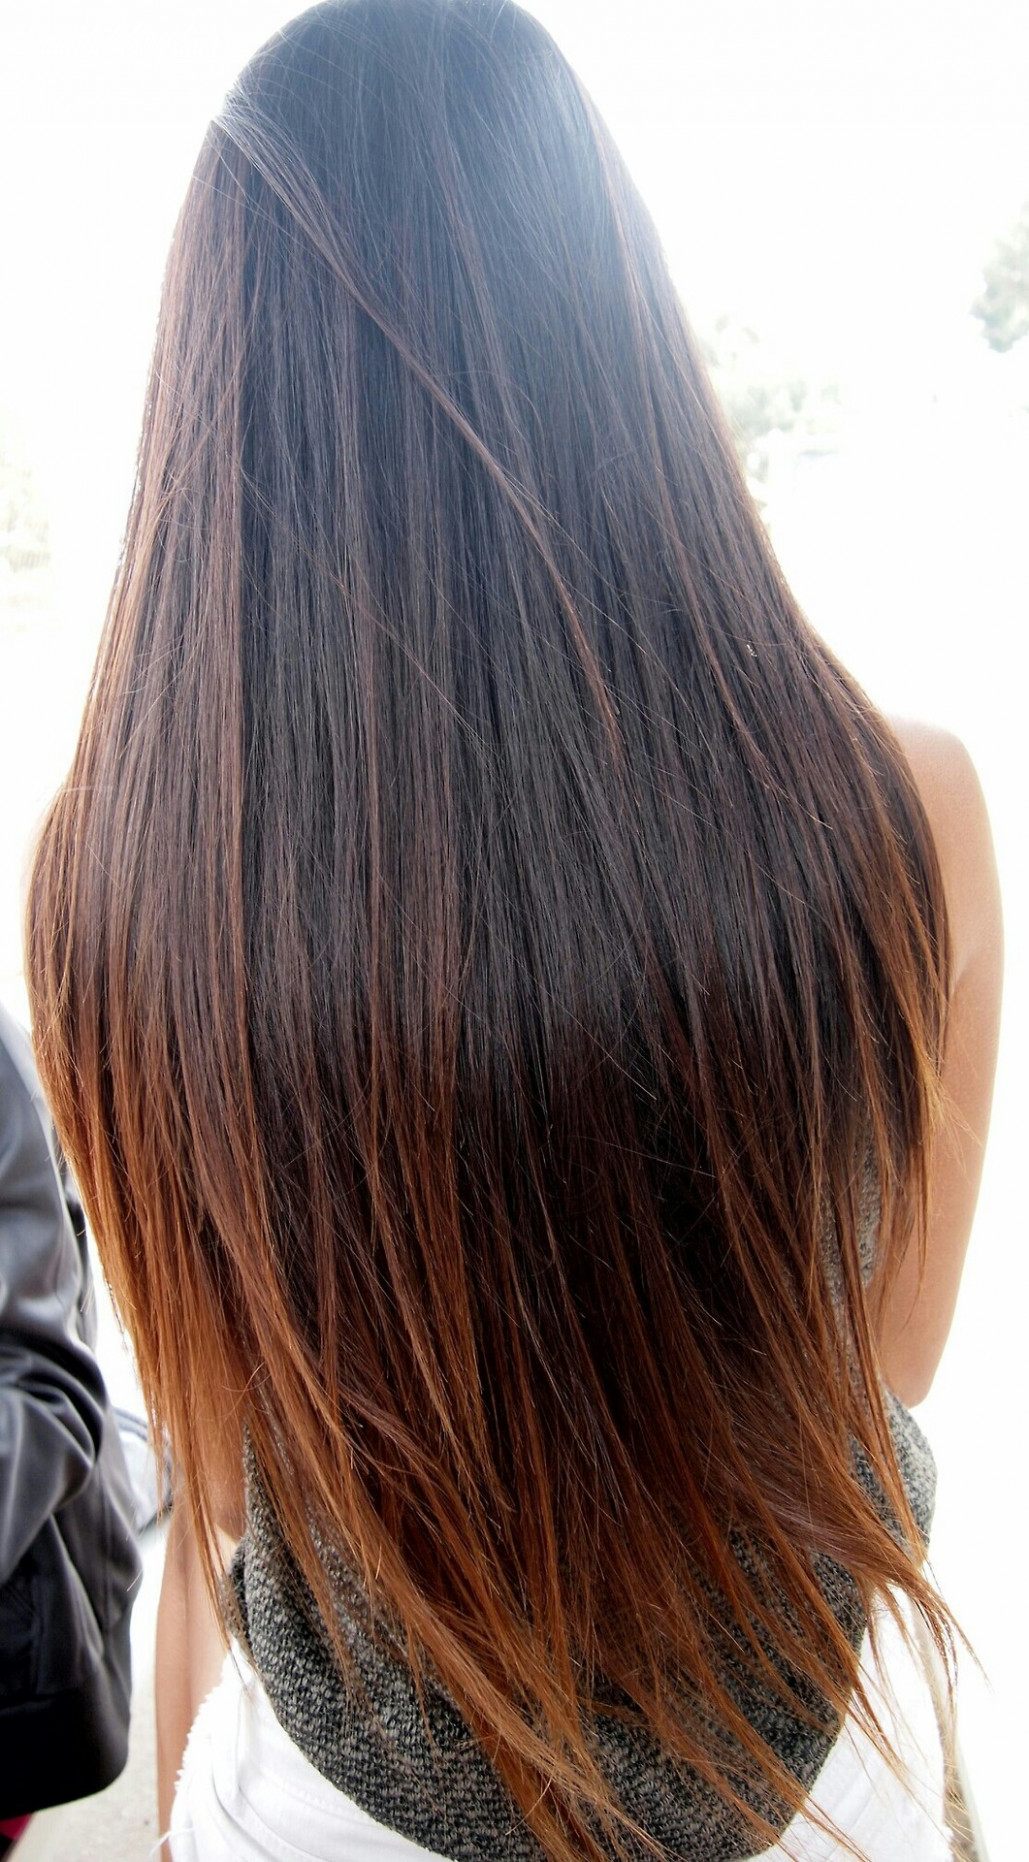 12 easy tips for beautiful long hair | systemicblogger beautiful long hair